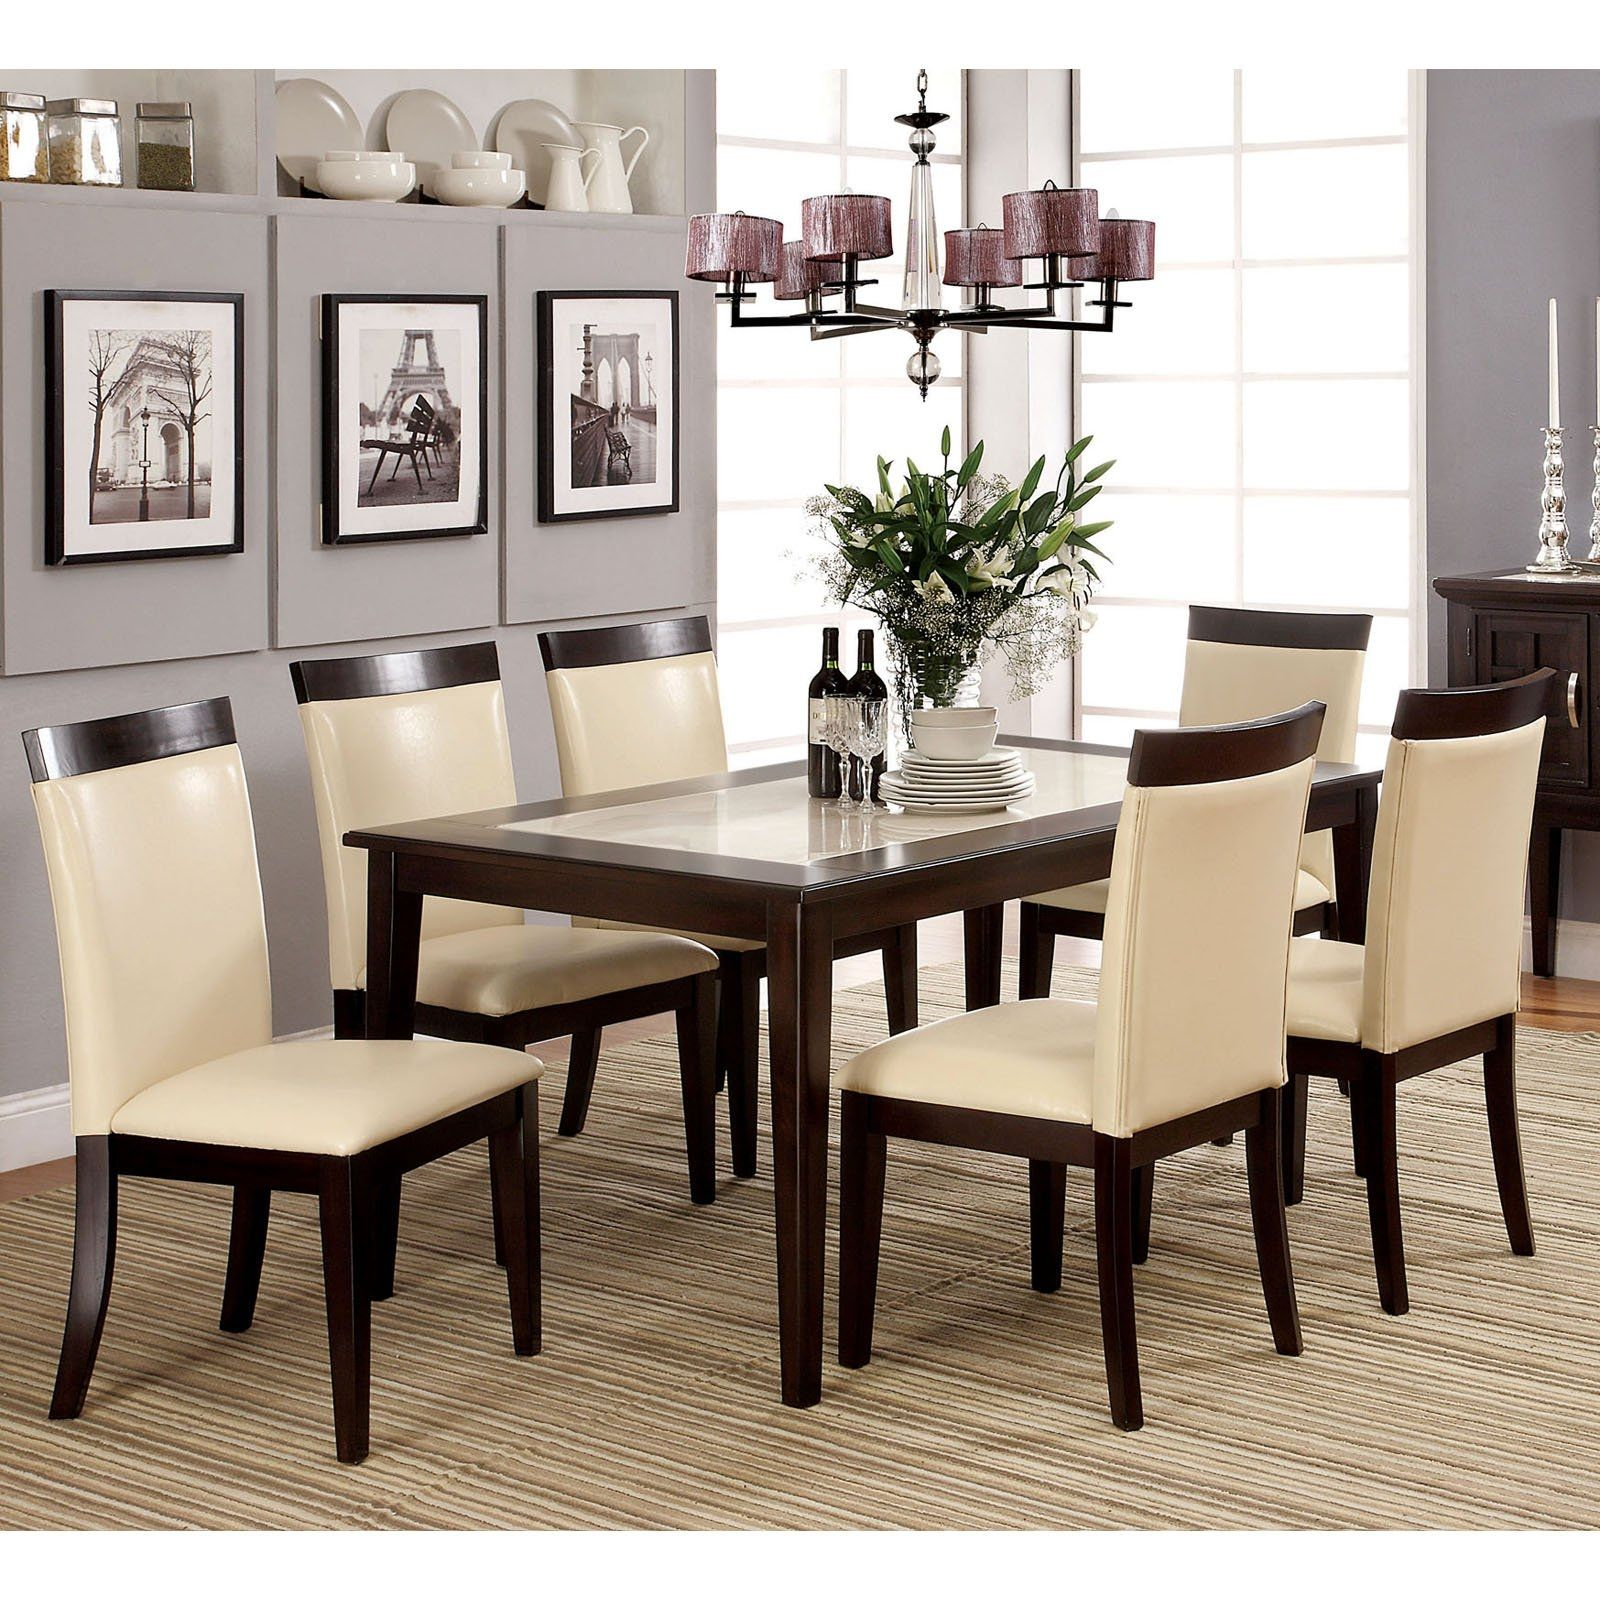 Mainstays 5 Piece Faux Marble Top Dining Set Walmart In Dimensions 3200 X  3200 Faux Marble Dining Room Table Set   It Seems Pretty Simple To Choose A  Dinin